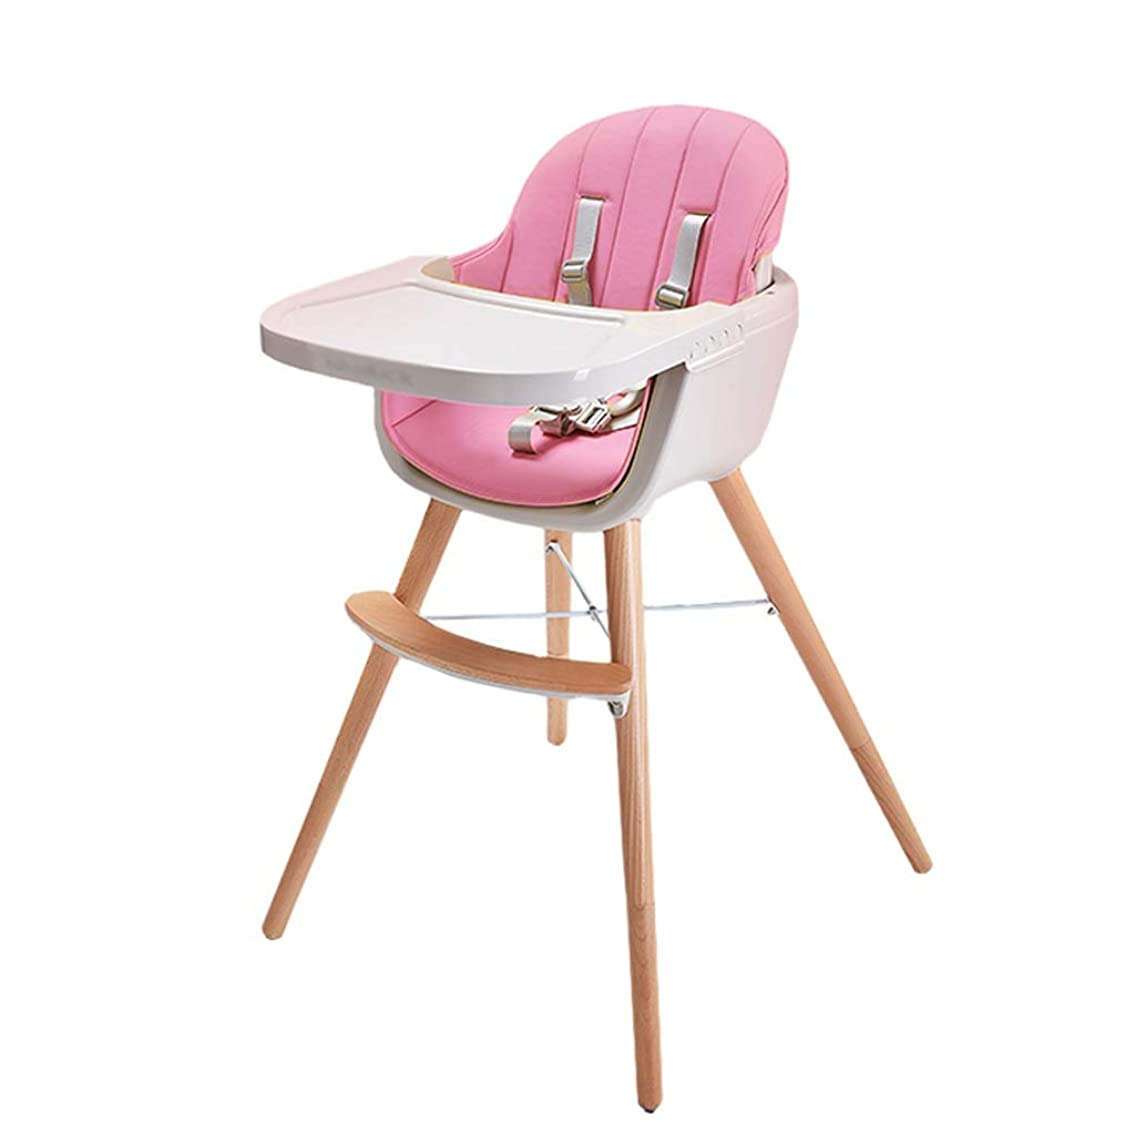 DUWEN High Chair Solid Wood Dining Chair Child Chair Multi-Function Dining Table Seat Children's Seat